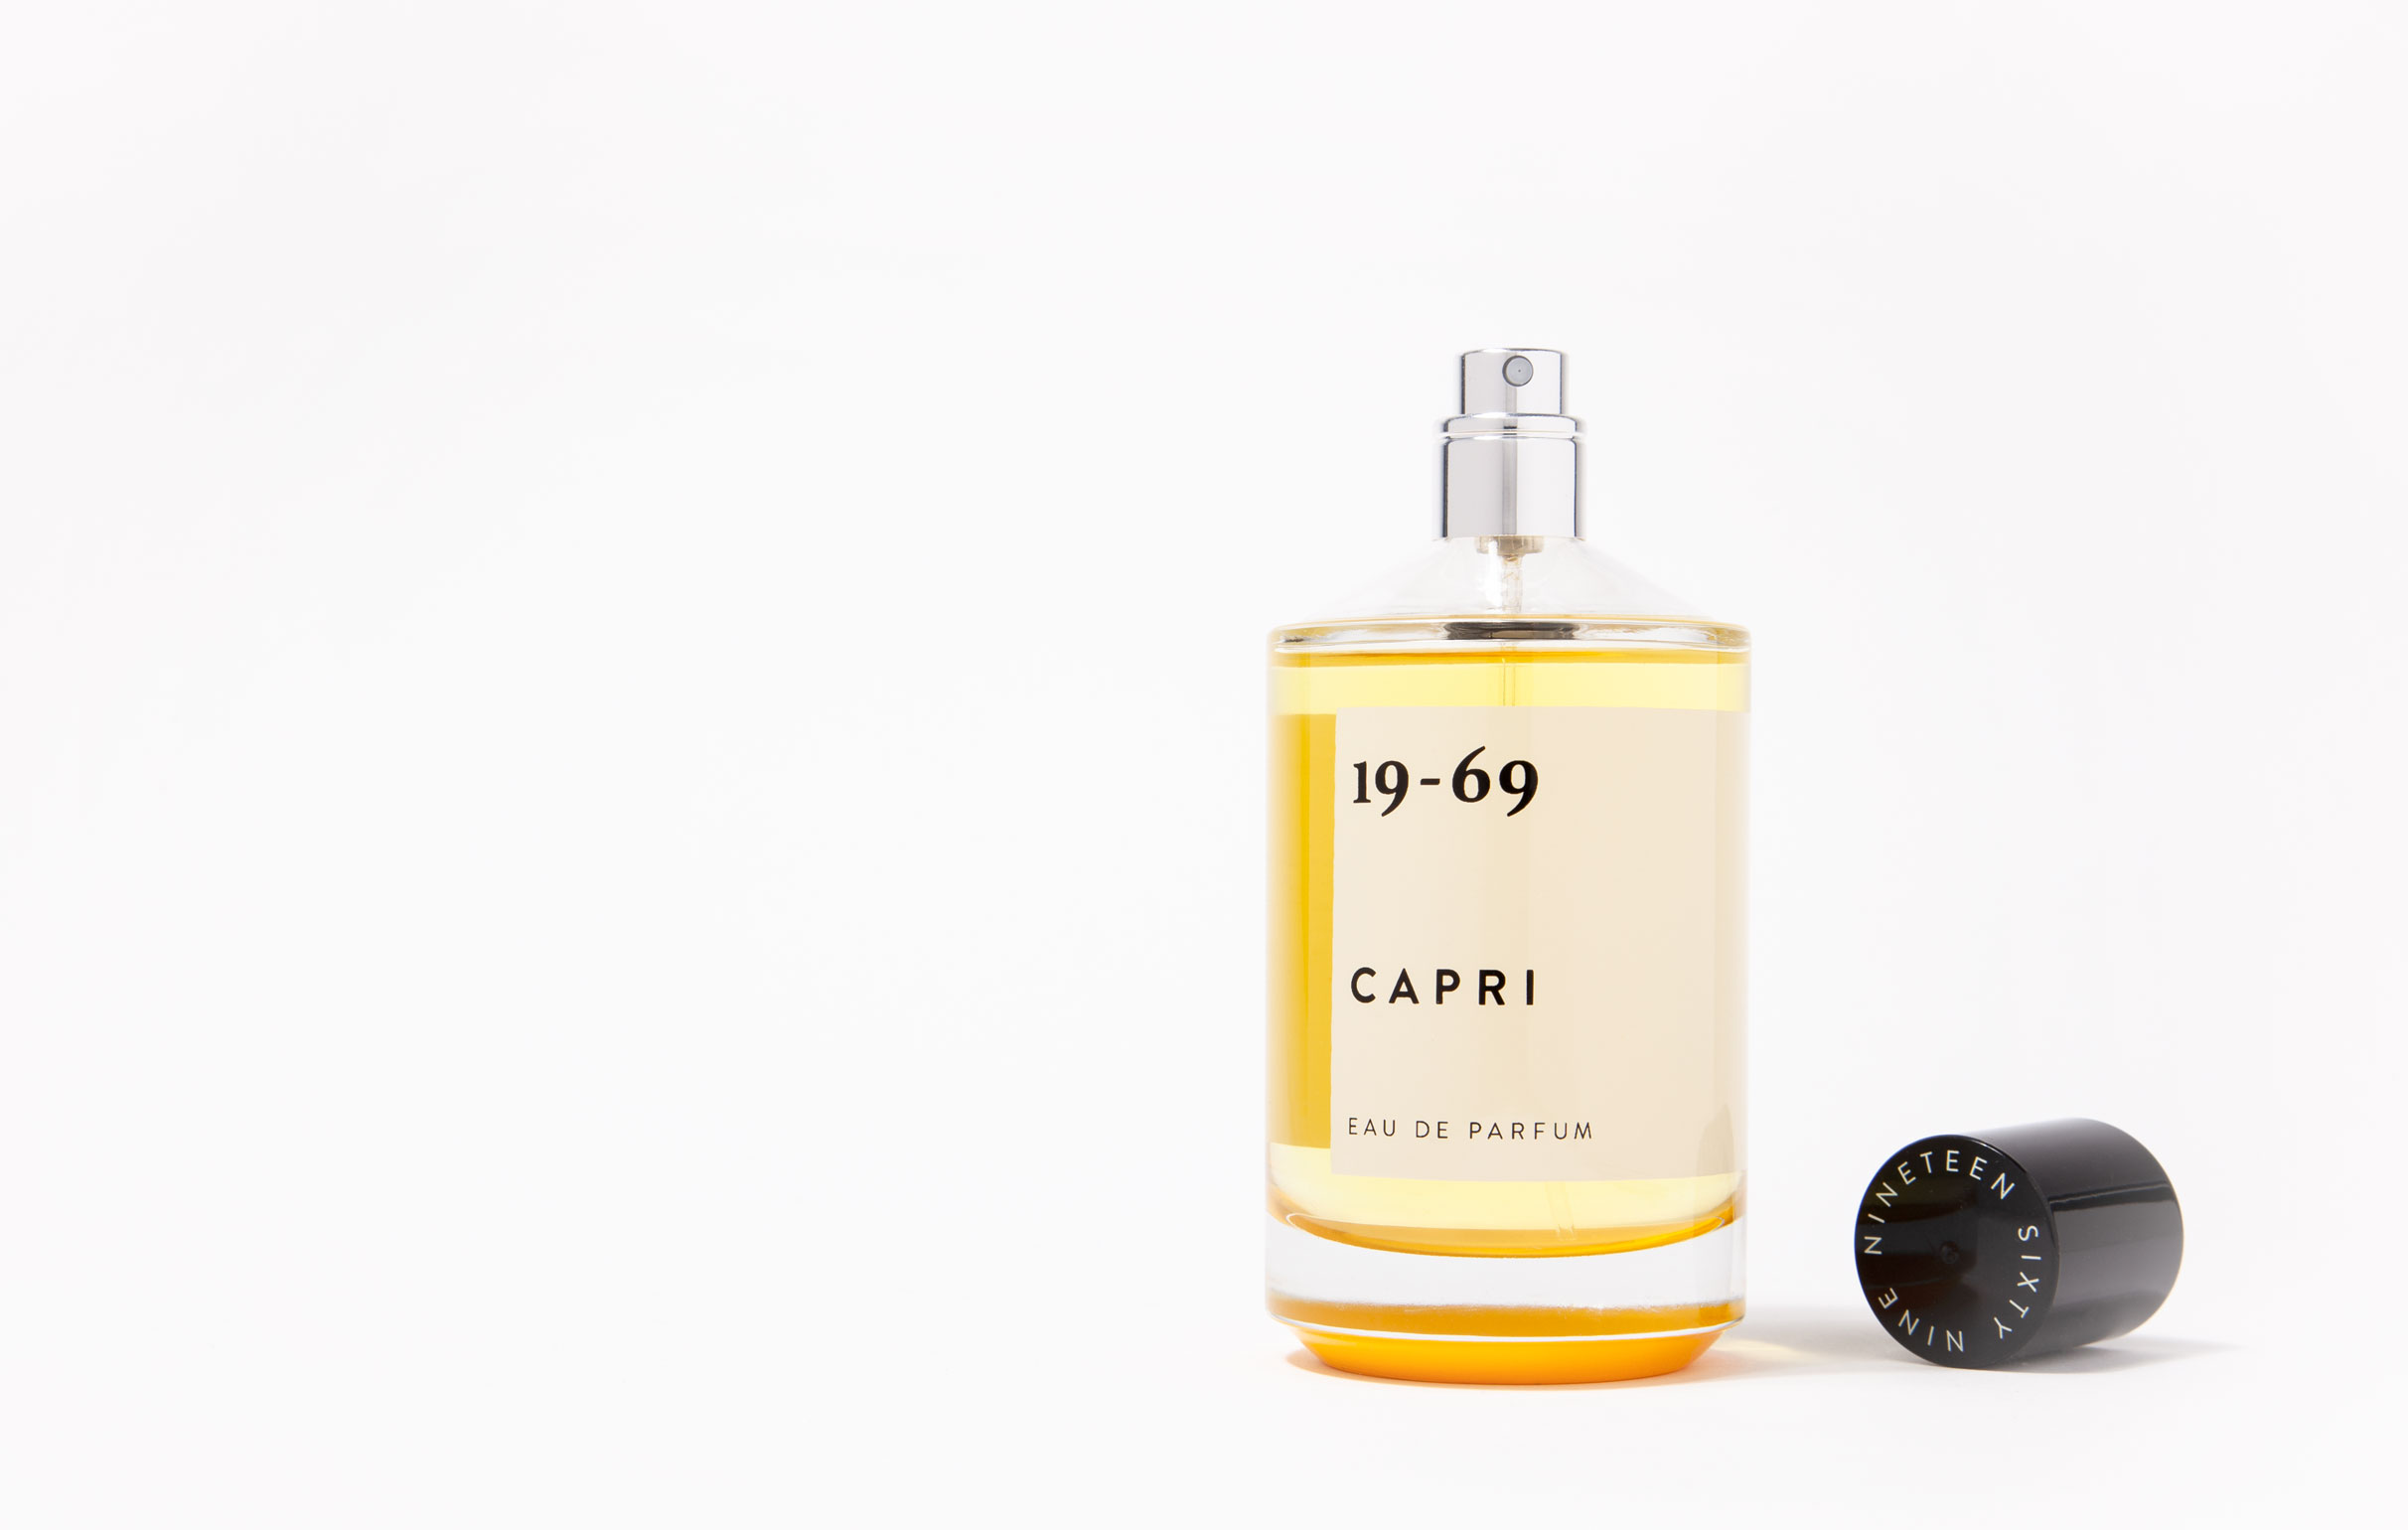 CAPRI is Inspired by the settings of Villa Malaparte and the iconic film Le Mépris (1963) that was filmed on the Isle of Capri. Capri Eau de Parfum 100 ml by 19-69.